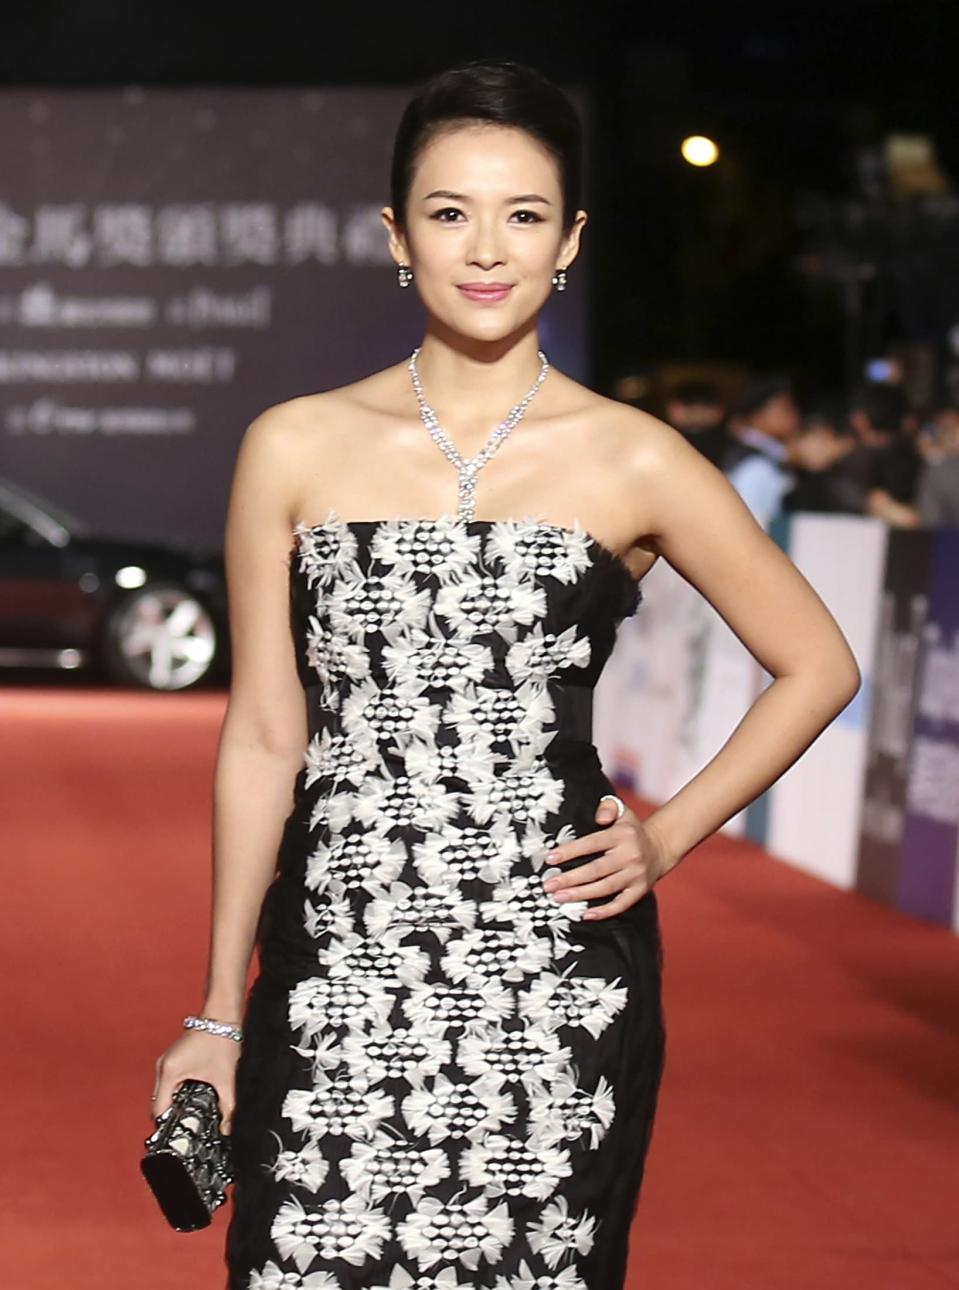 Chinese actress Zhang Ziyi poses for photographers on the red carpet at the 50th Golden Horse Film Awards in Taipei November 23, 2013. REUTERS/Patrick Lin (TAIWAN - Tags: ENTERTAINMENT)